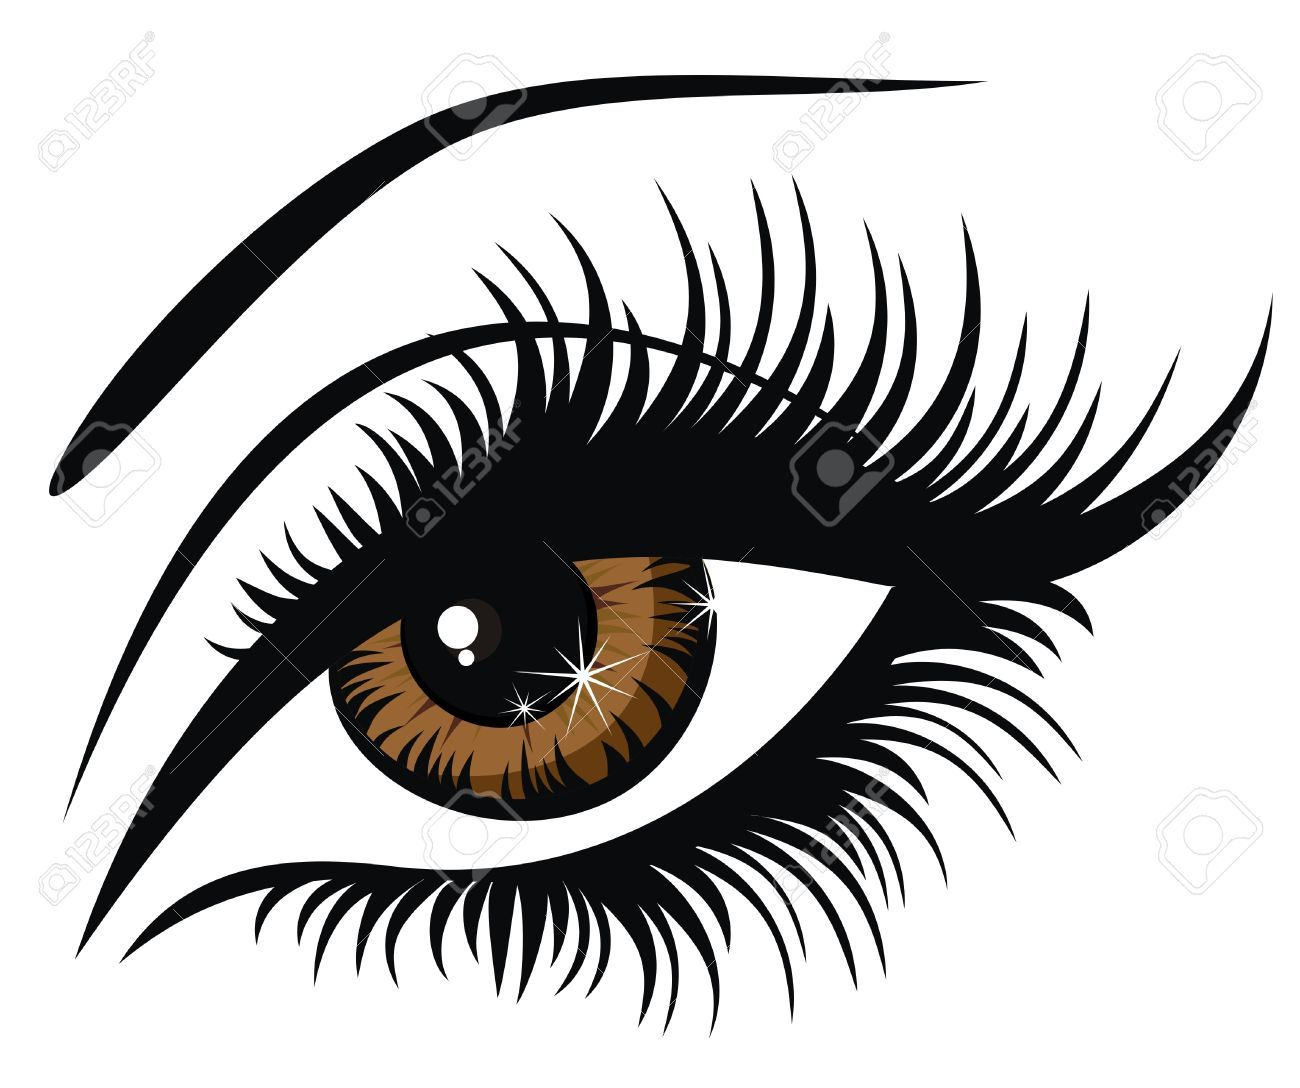 eyelashes coloring pages - photo#27